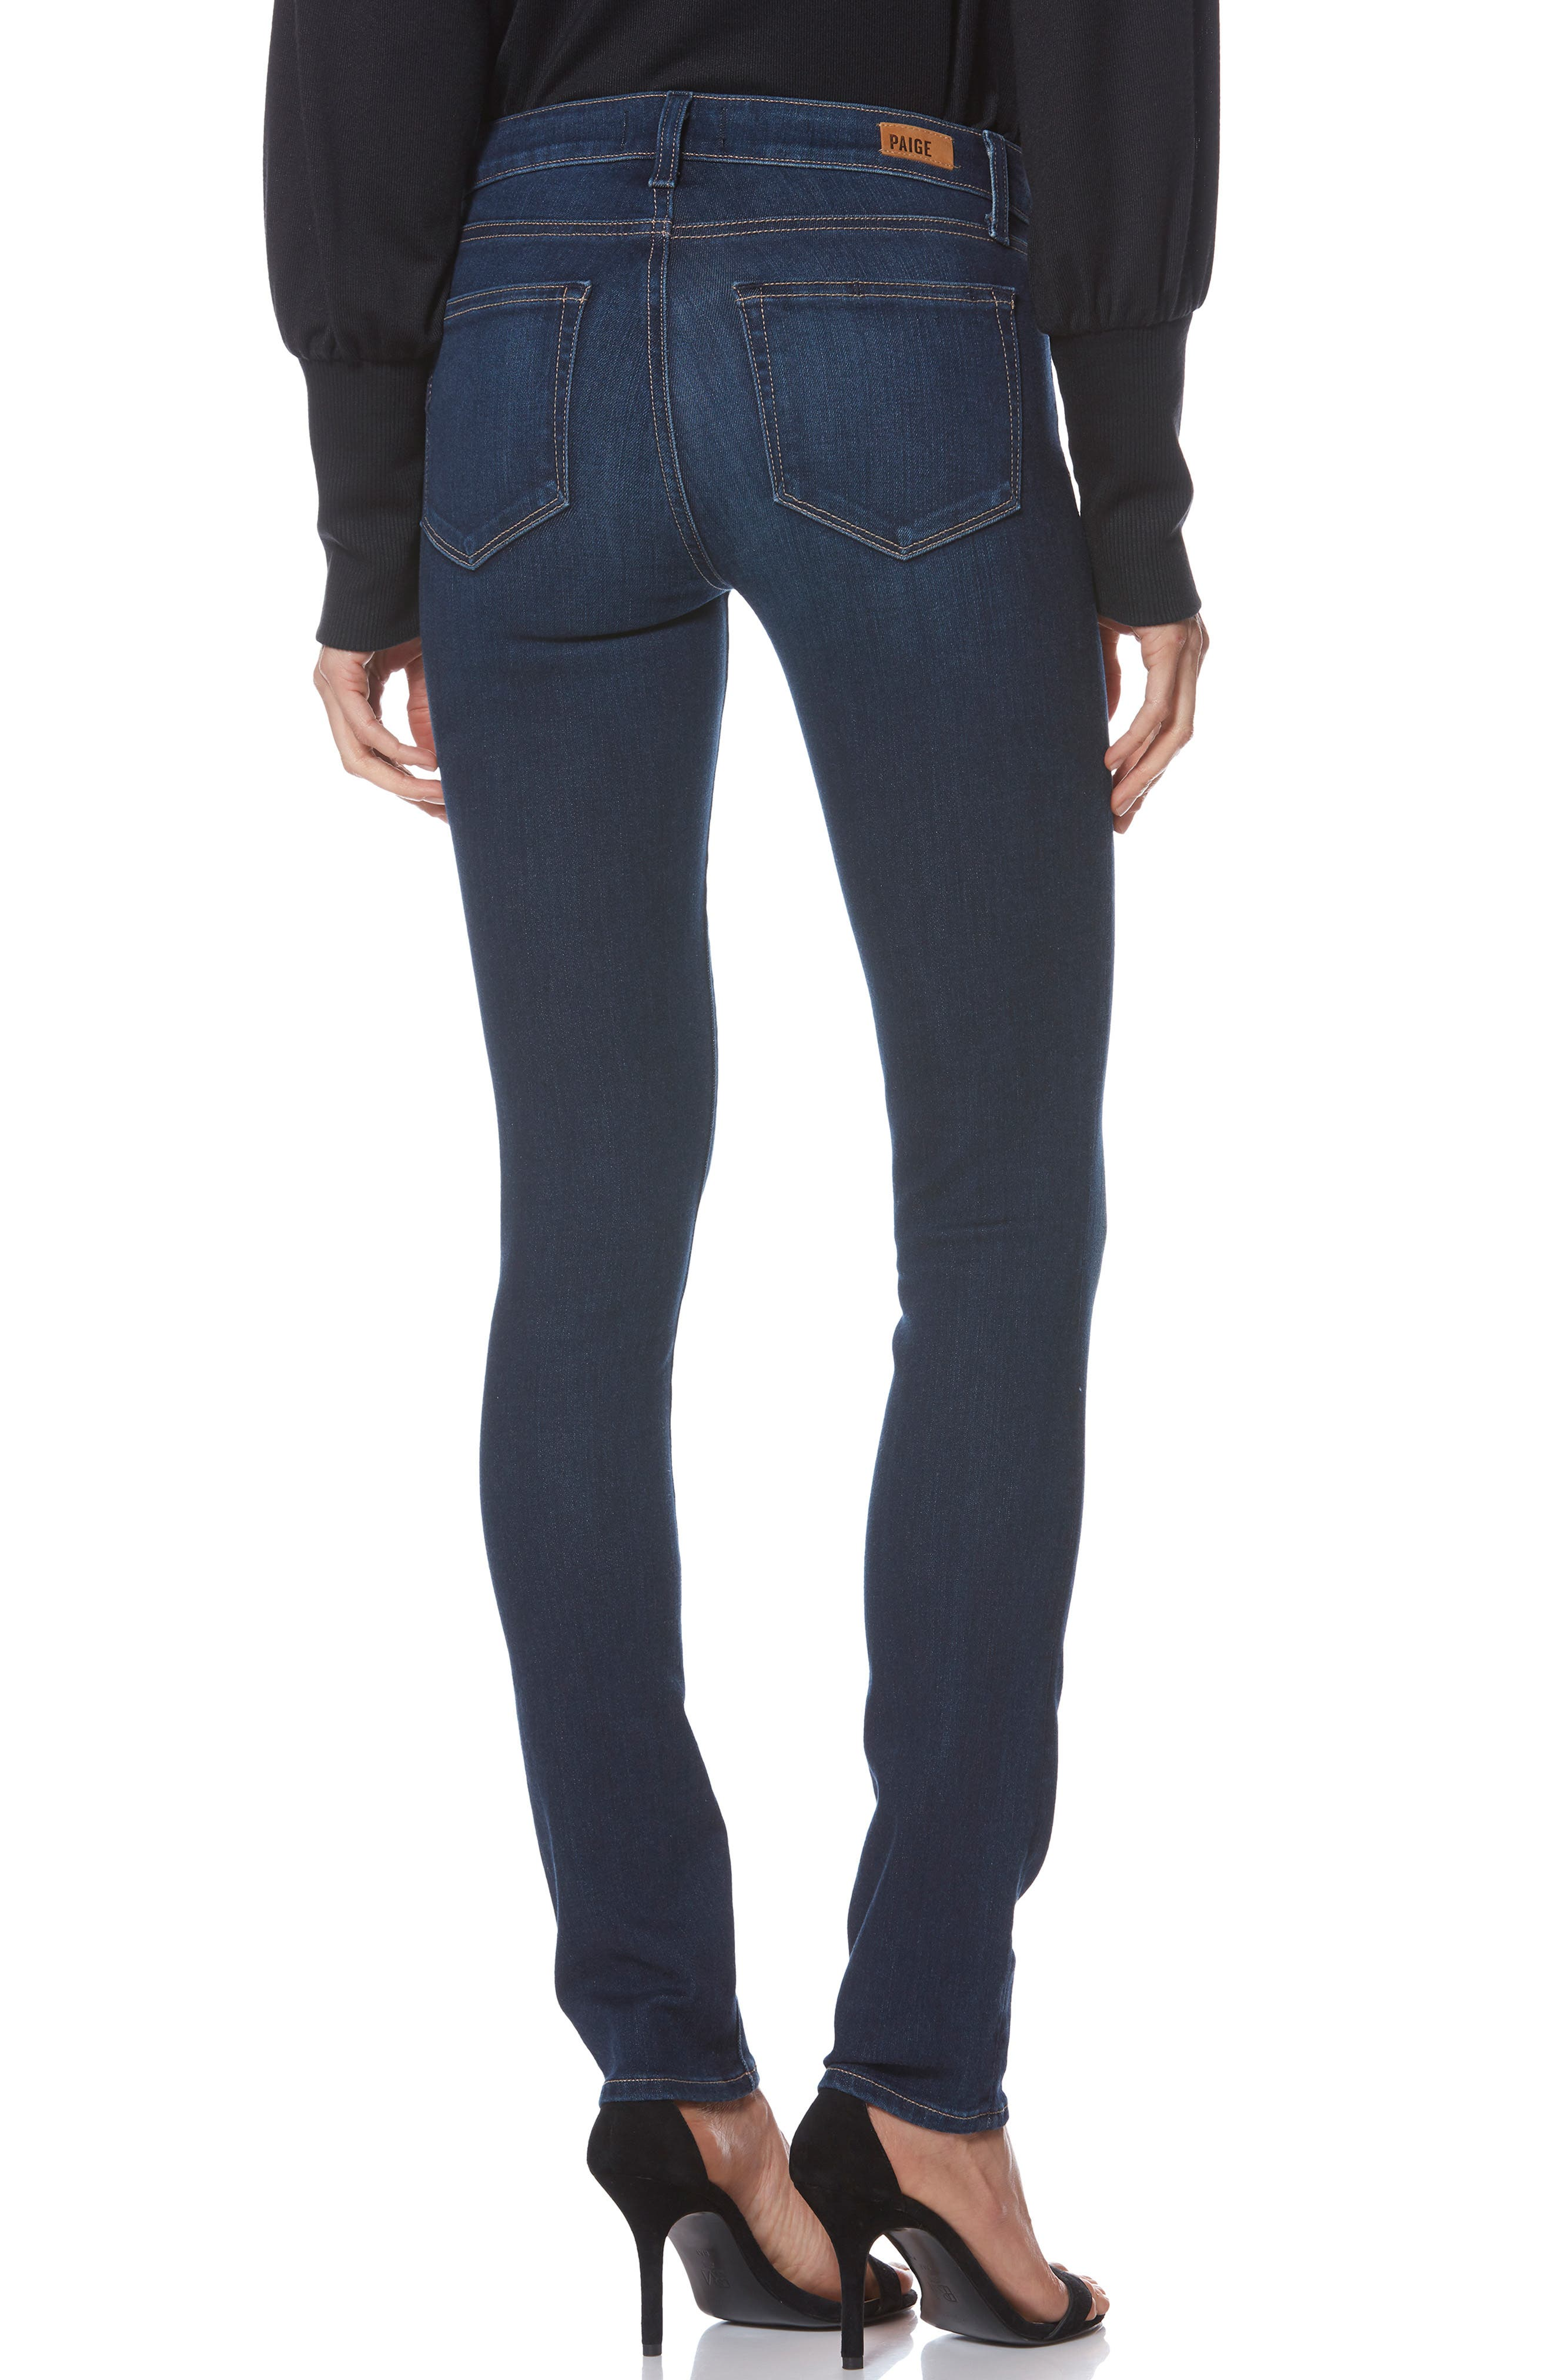 PAIGE, Skyline Skinny Jeans, Alternate thumbnail 2, color, IDLEWILD